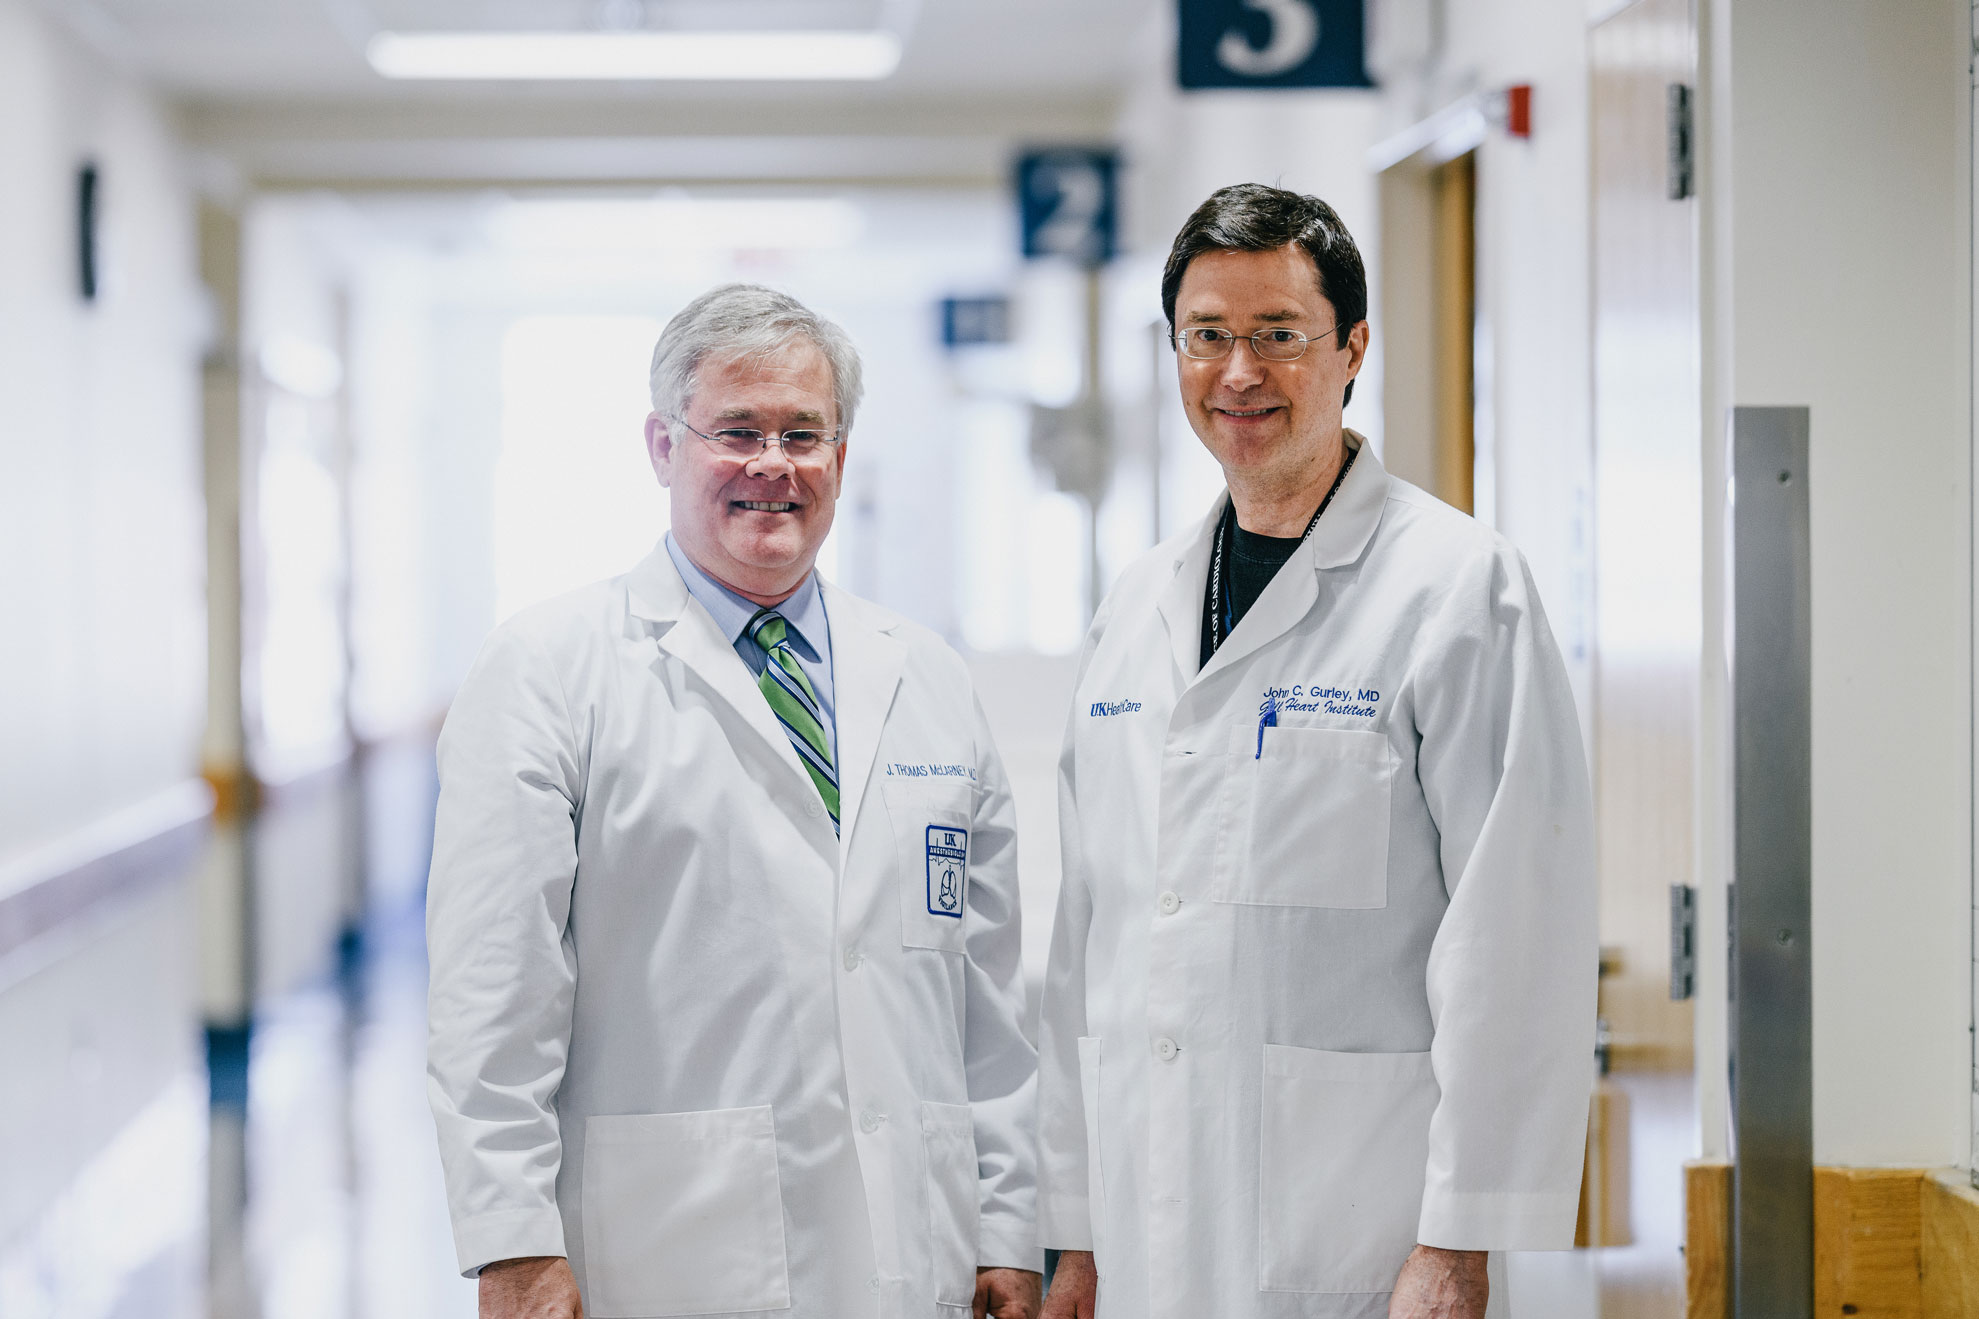 Dr. McLarney and Dr. Gurley wearing their white doctor's coats smile for a photo in a hallway at the hospital.